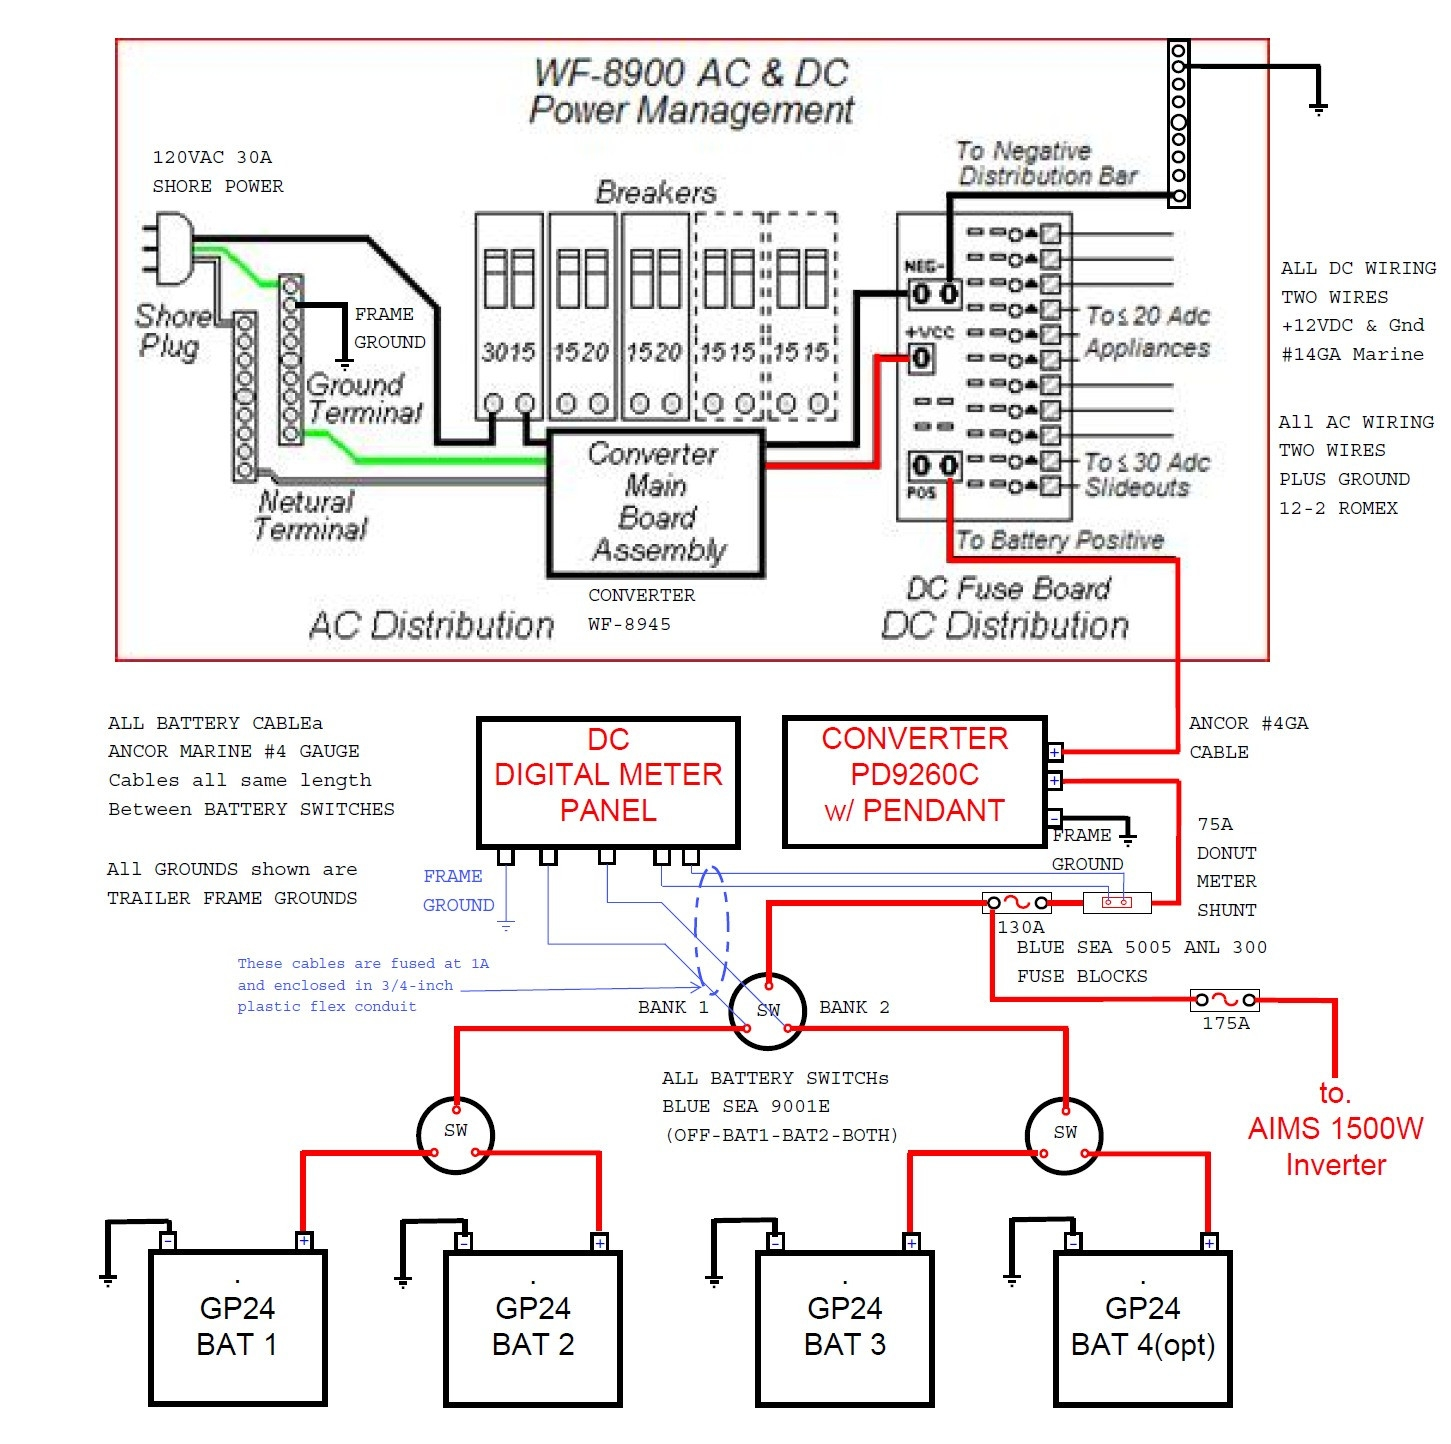 20 hp kohler generator wiring diagram free download 30 amp shore power wiring diagram | free wiring diagram 50 30 20 rv wiring diagram free download #1